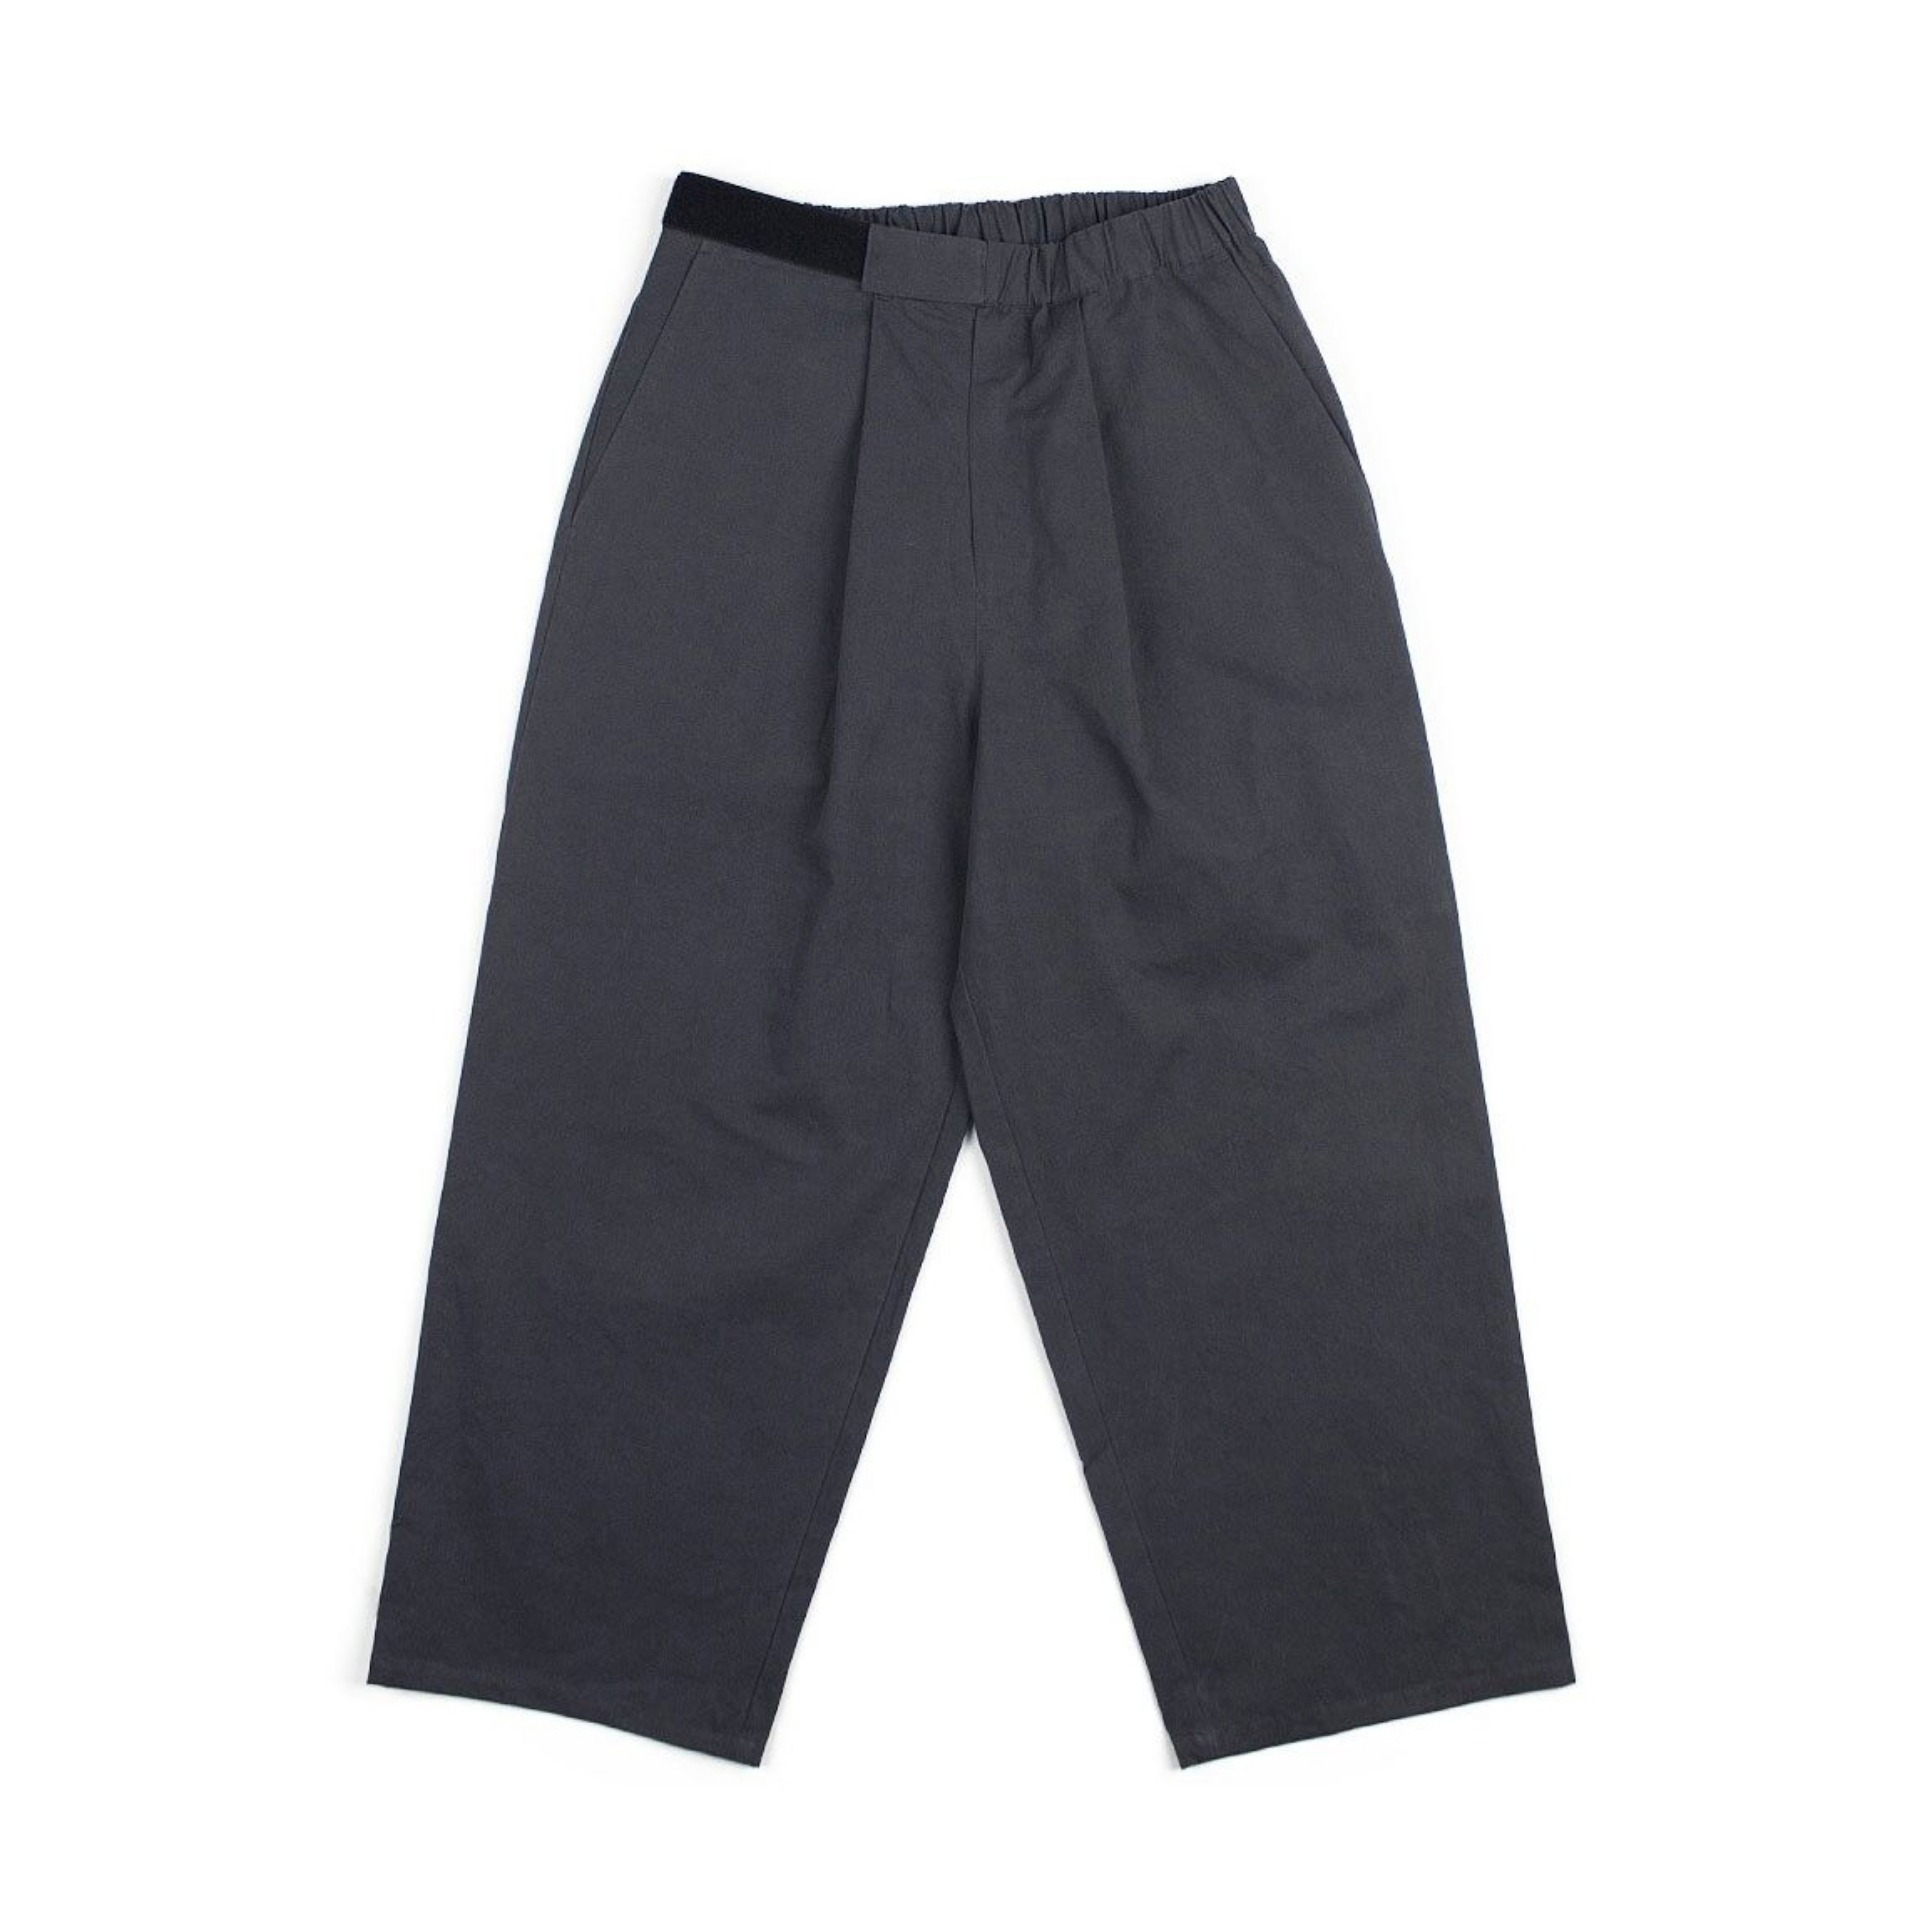 PANTS FOR MANKIND VELCRO TYPE(CHARCOAL)